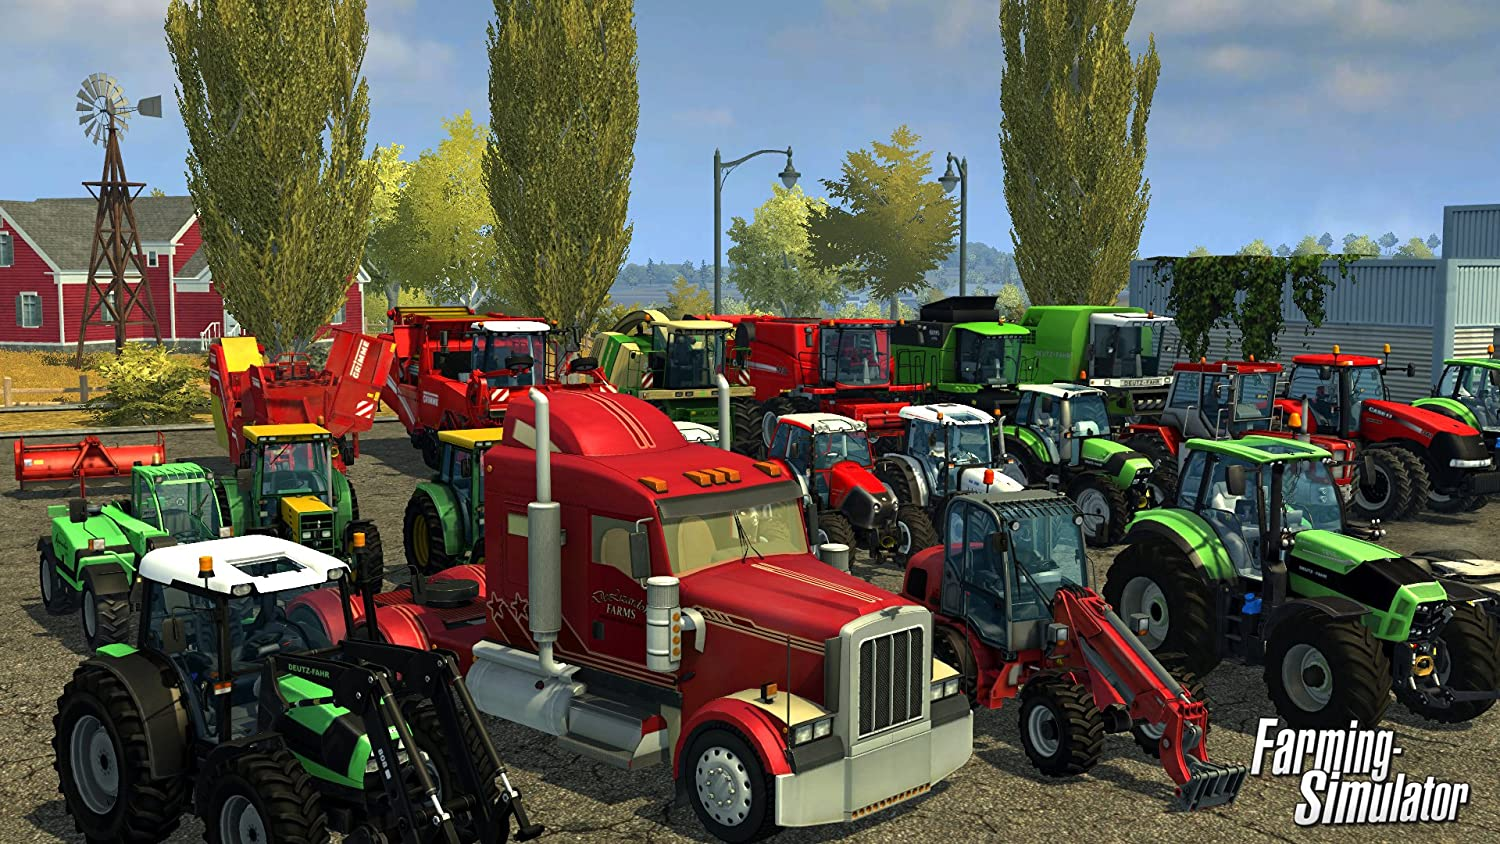 Farm Farming Simulator Farming Simulator 2013 Xbox